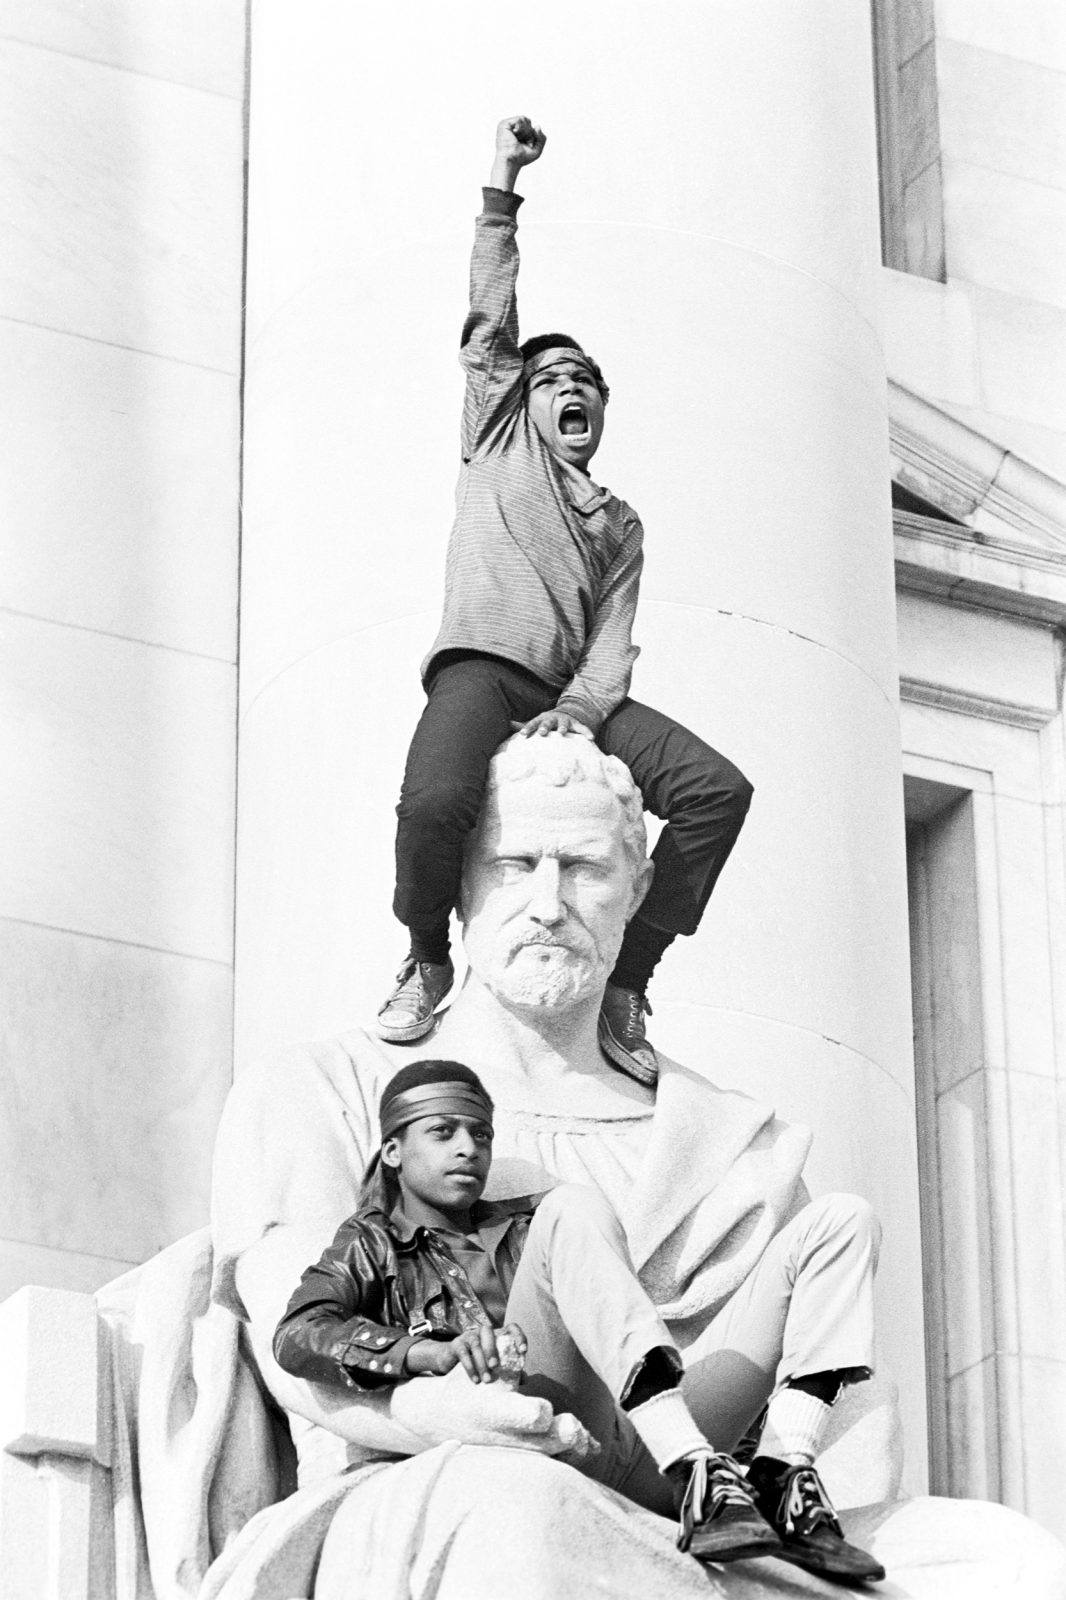 Boy gives raised fist salute as he and a friend sit on a statue in front of the courthouse during the Bobby Seale trial.